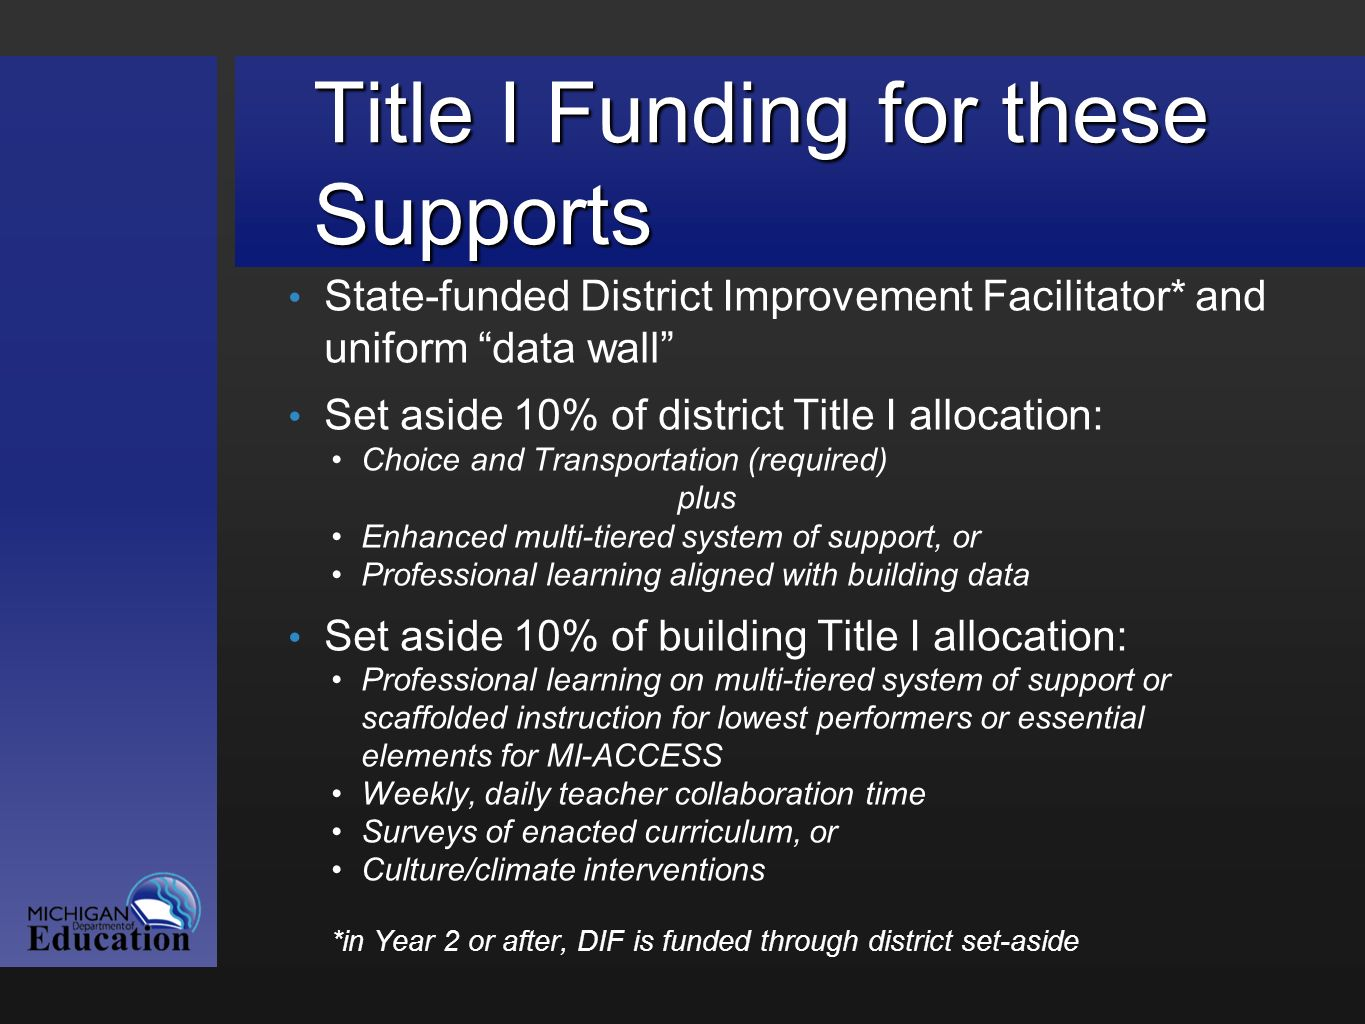 Title I Funding for these Supports State-funded District Improvement Facilitator* and uniform data wall Set aside 10% of district Title I allocation: Choice and Transportation (required) plus Enhanced multi-tiered system of support, or Professional learning aligned with building data Set aside 10% of building Title I allocation: Professional learning on multi-tiered system of support or scaffolded instruction for lowest performers or essential elements for MI-ACCESS Weekly, daily teacher collaboration time Surveys of enacted curriculum, or Culture/climate interventions *in Year 2 or after, DIF is funded through district set-aside